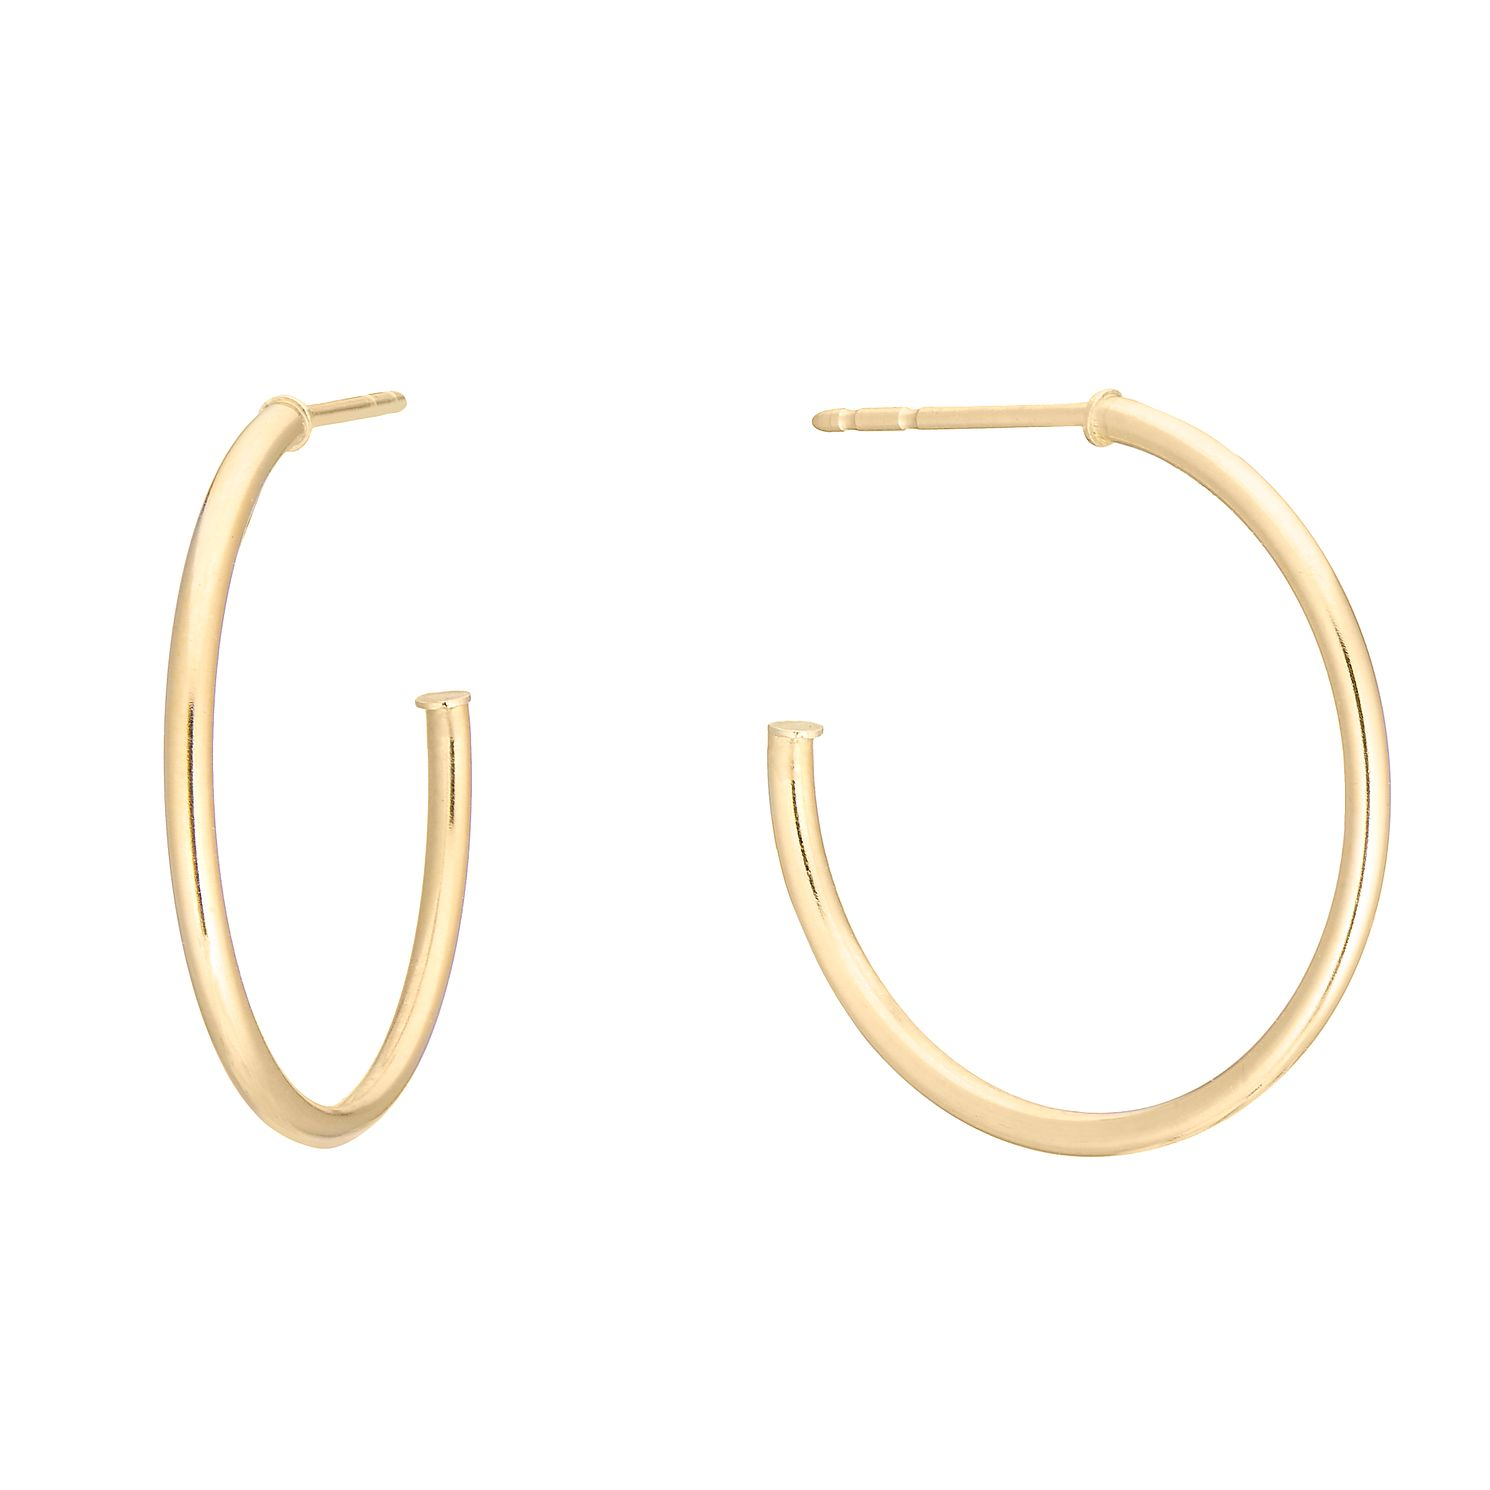 9ct Yellow Gold 17mm Skinny Hoop Earrings - Product number 3140598